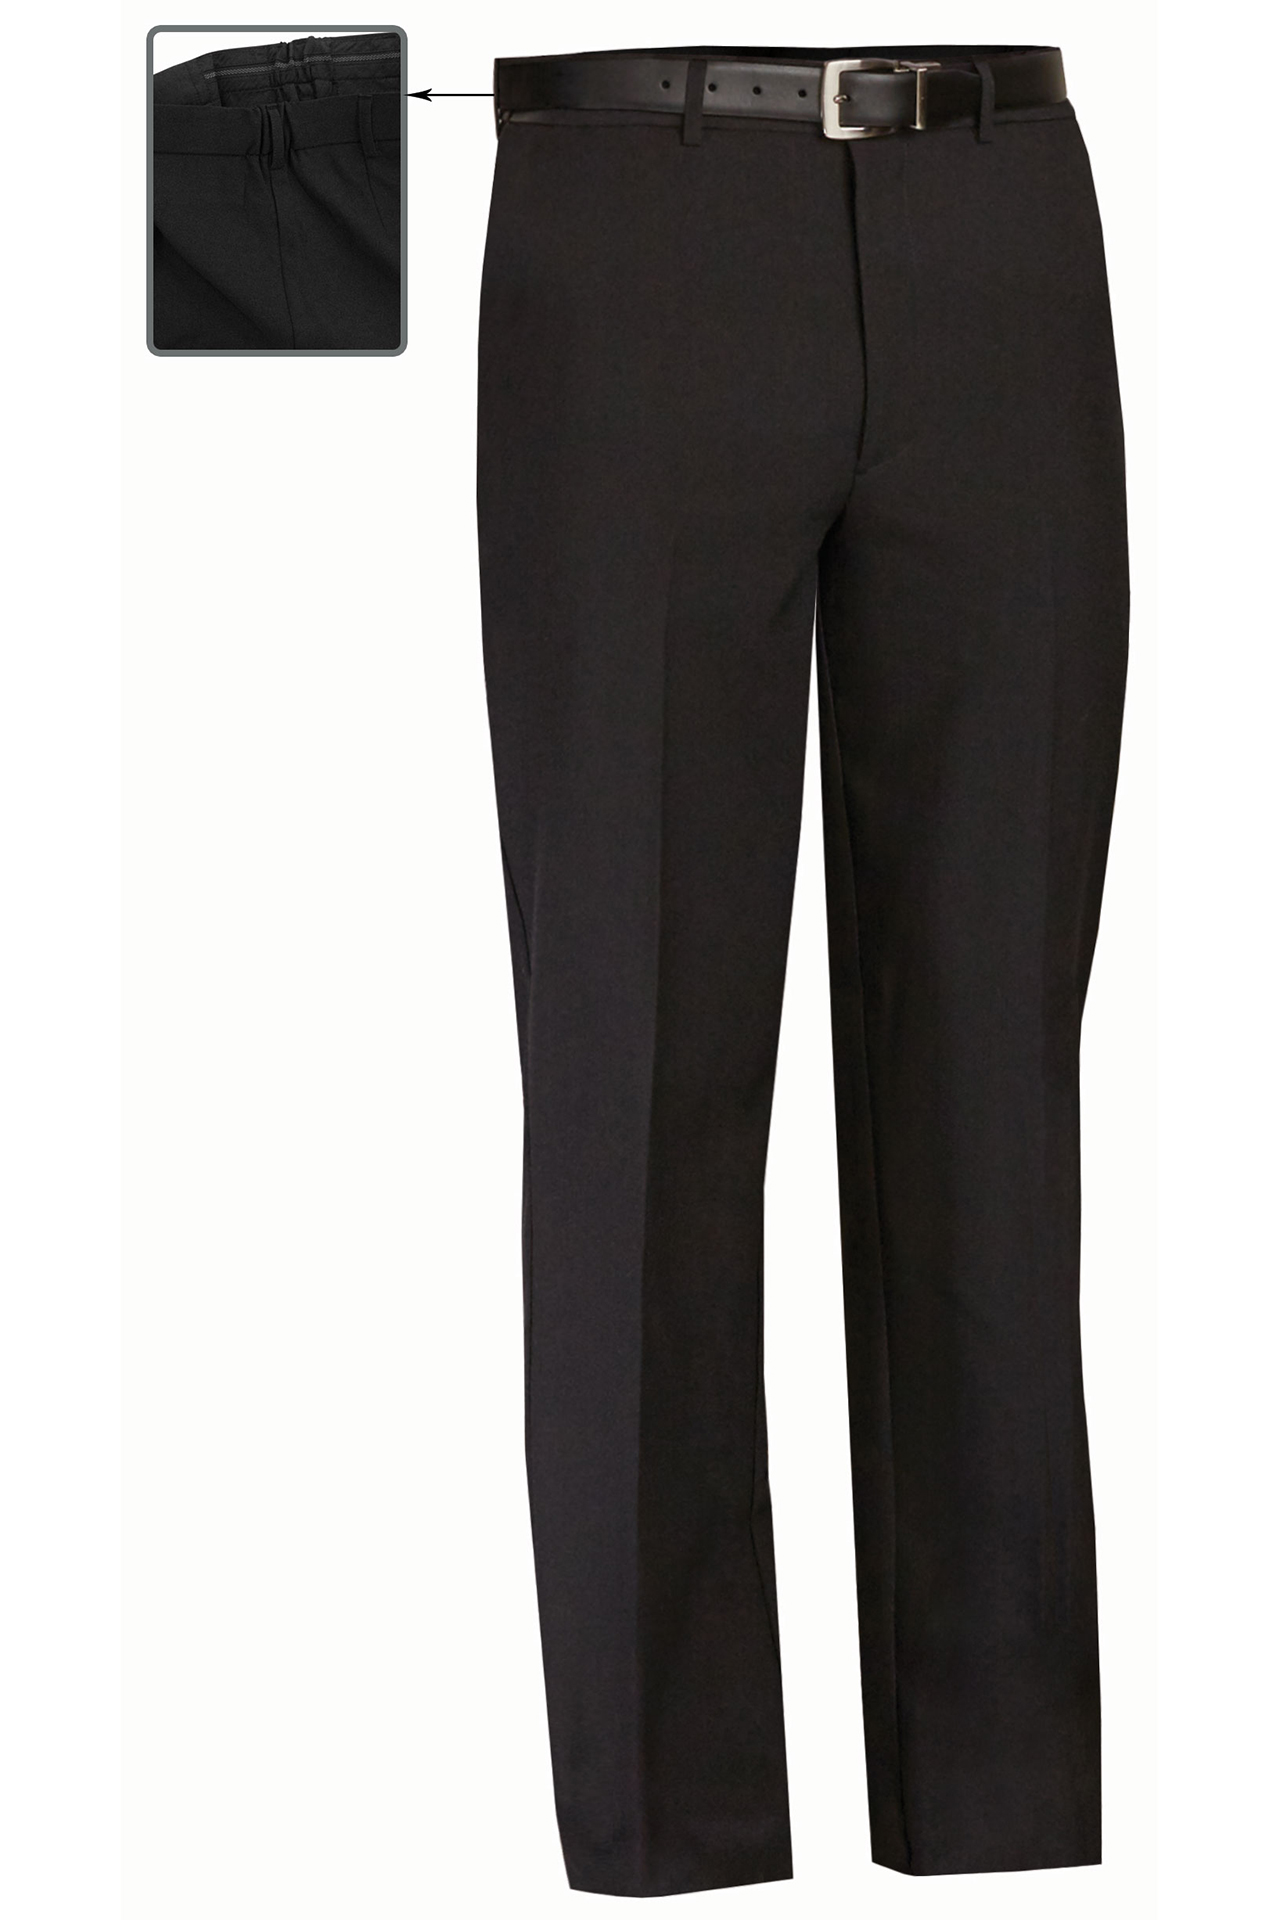 Mens Hospitality Pants, No Pockets-A Plus